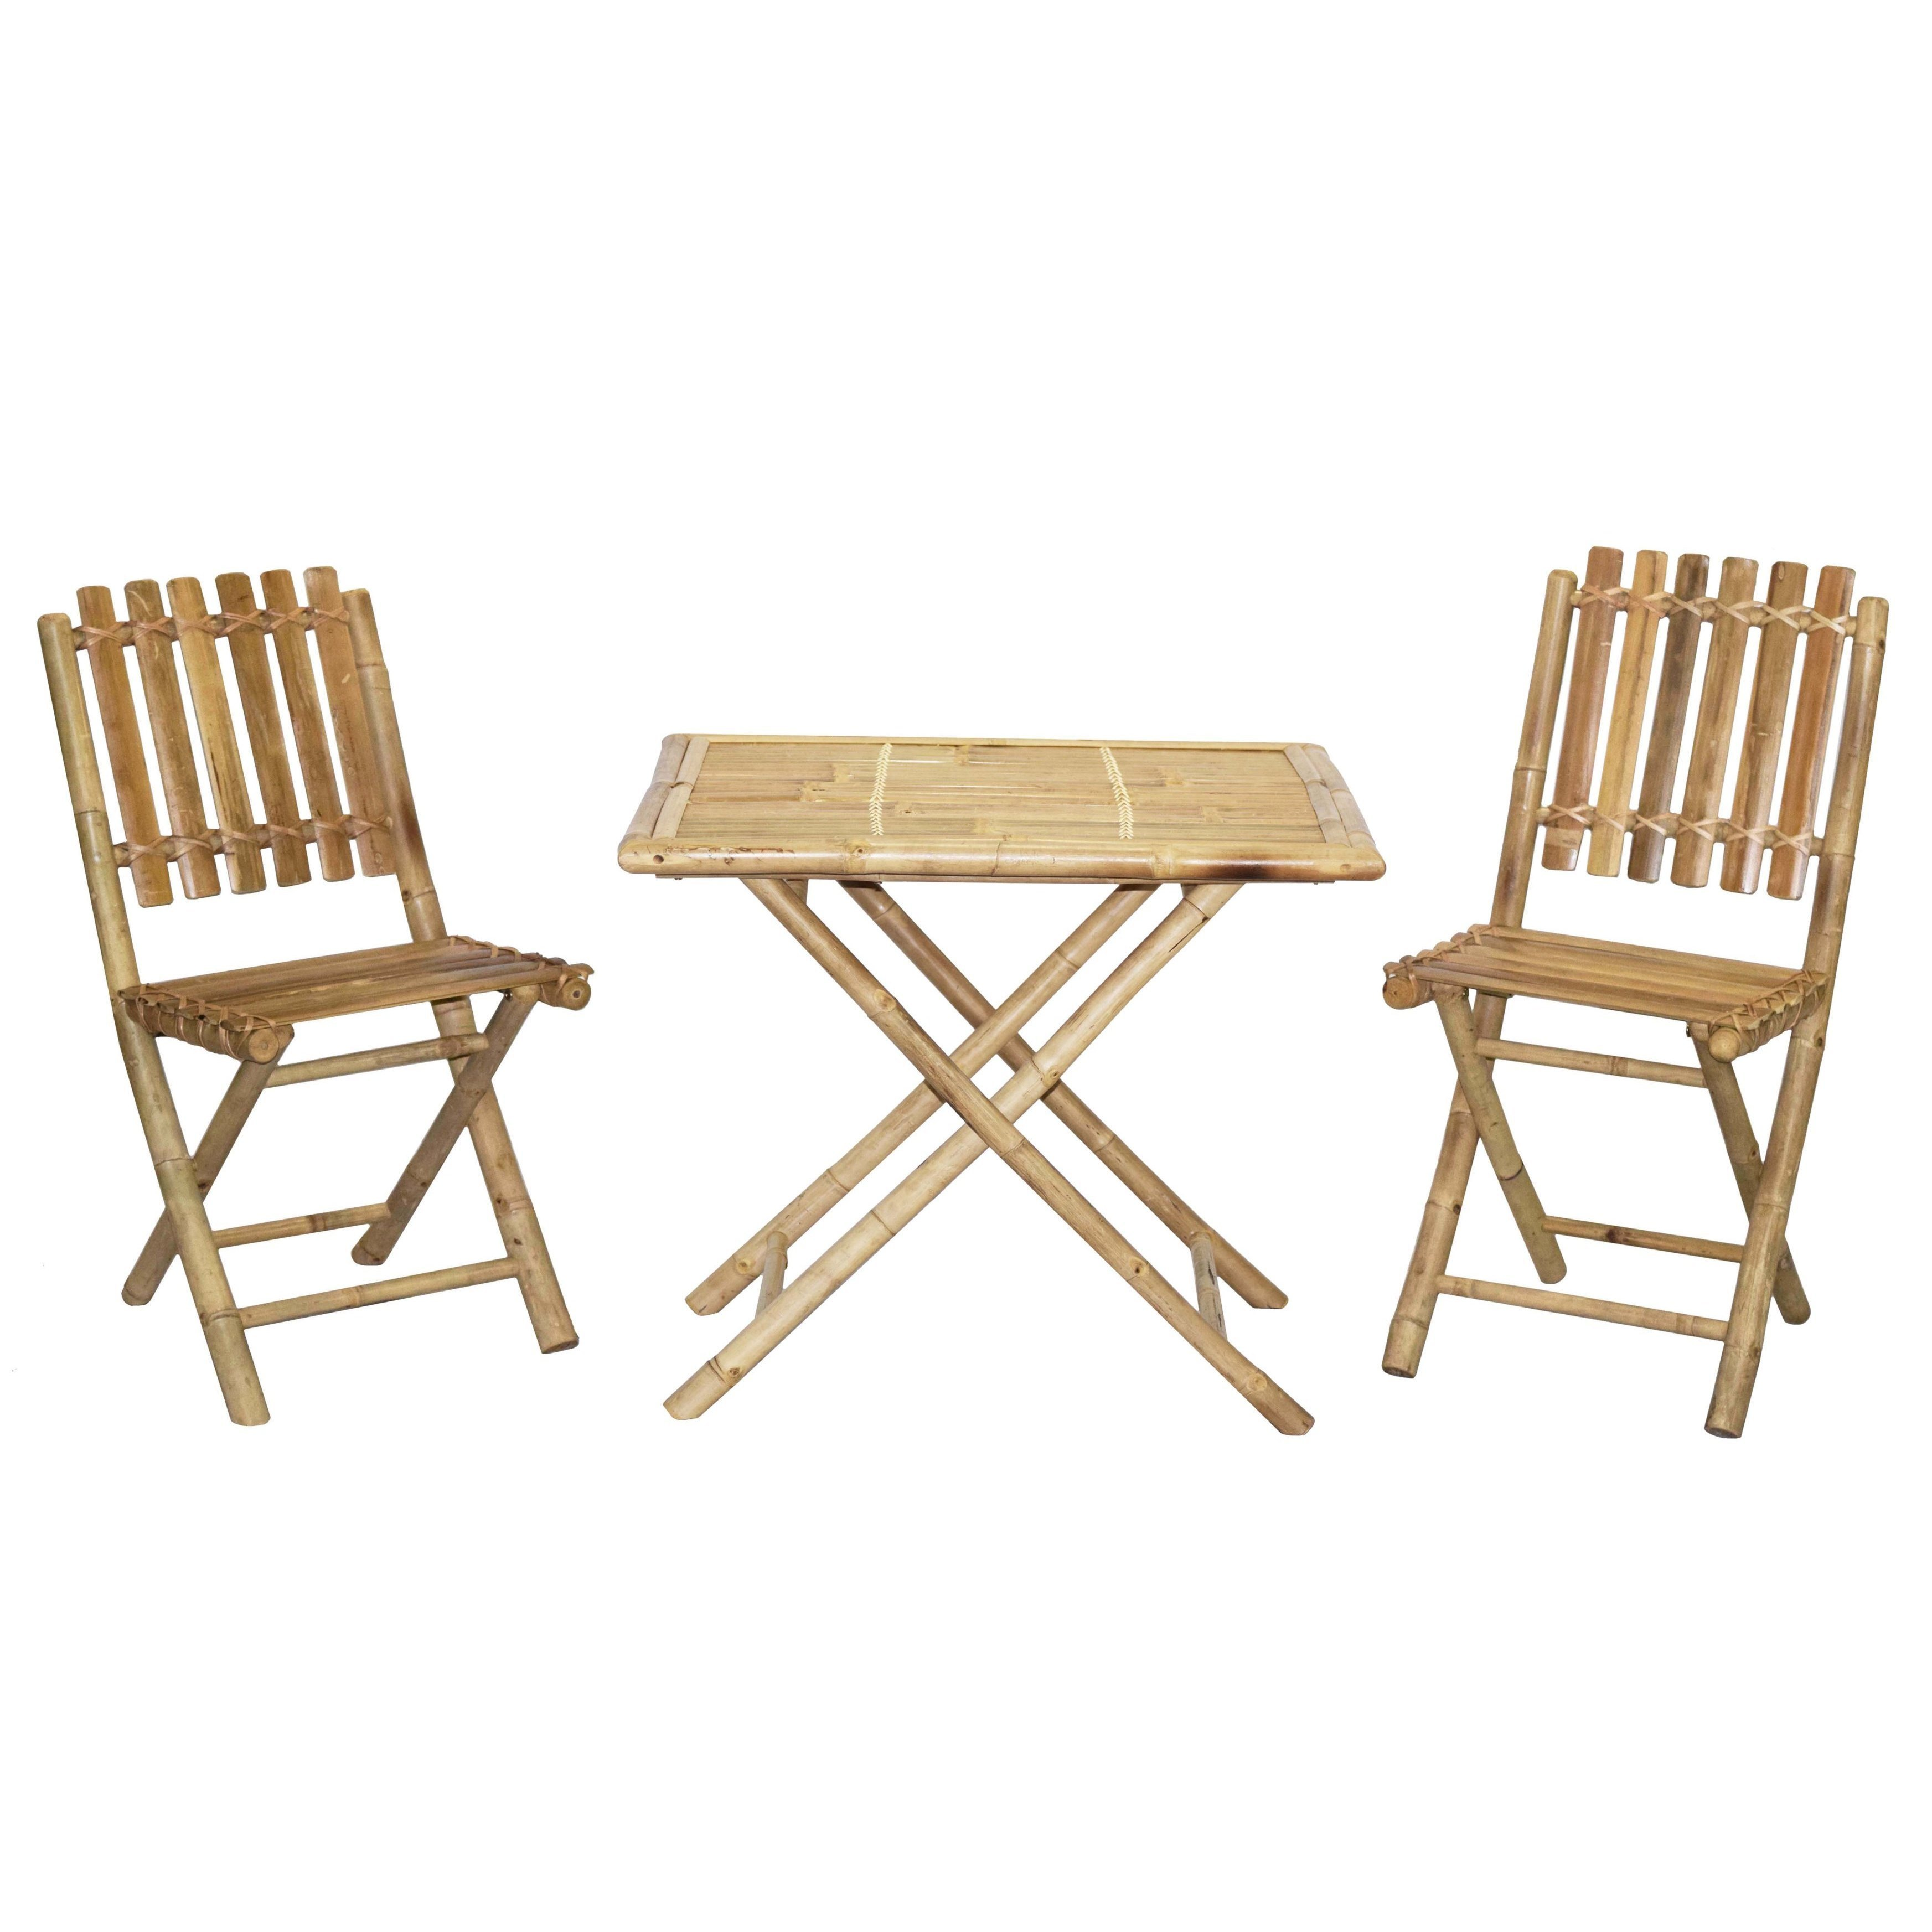 Hand-made Bistro Table Chair Set Bamboo Wooden Frame Natural Finish ...